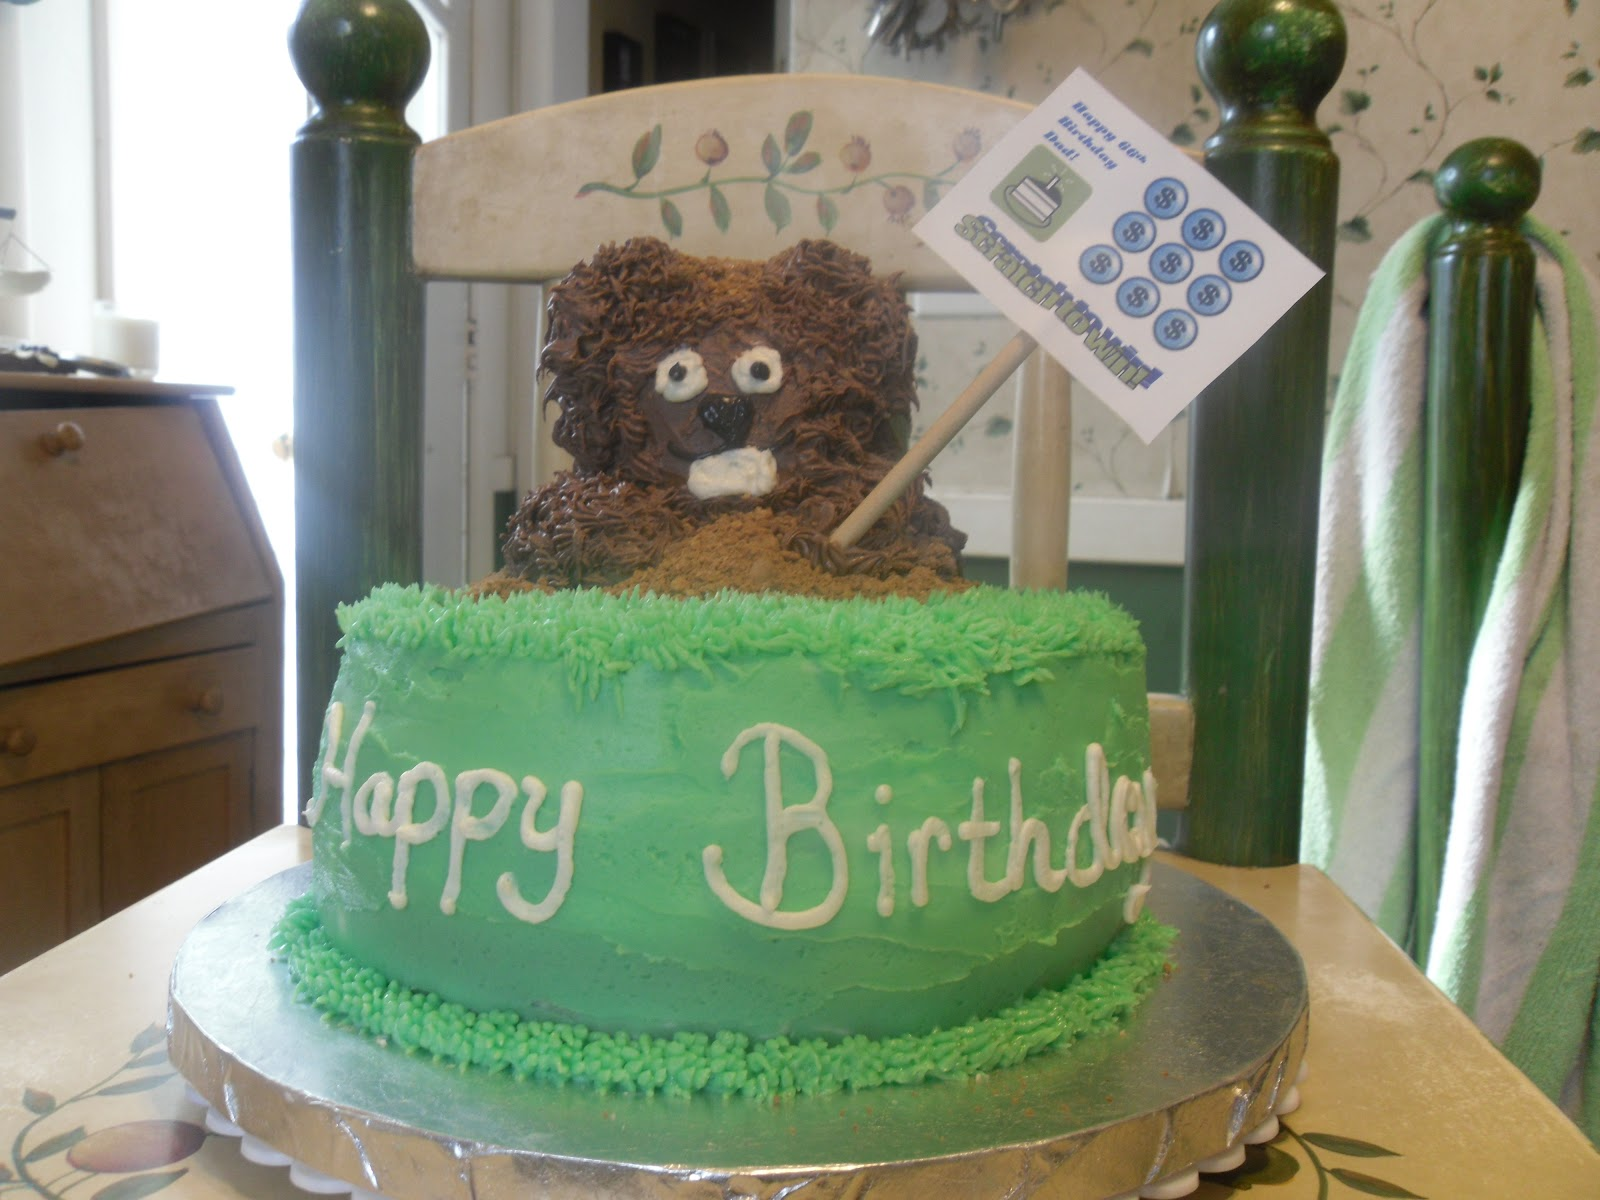 Happy 66th Birthday Cake Ideas and Designs